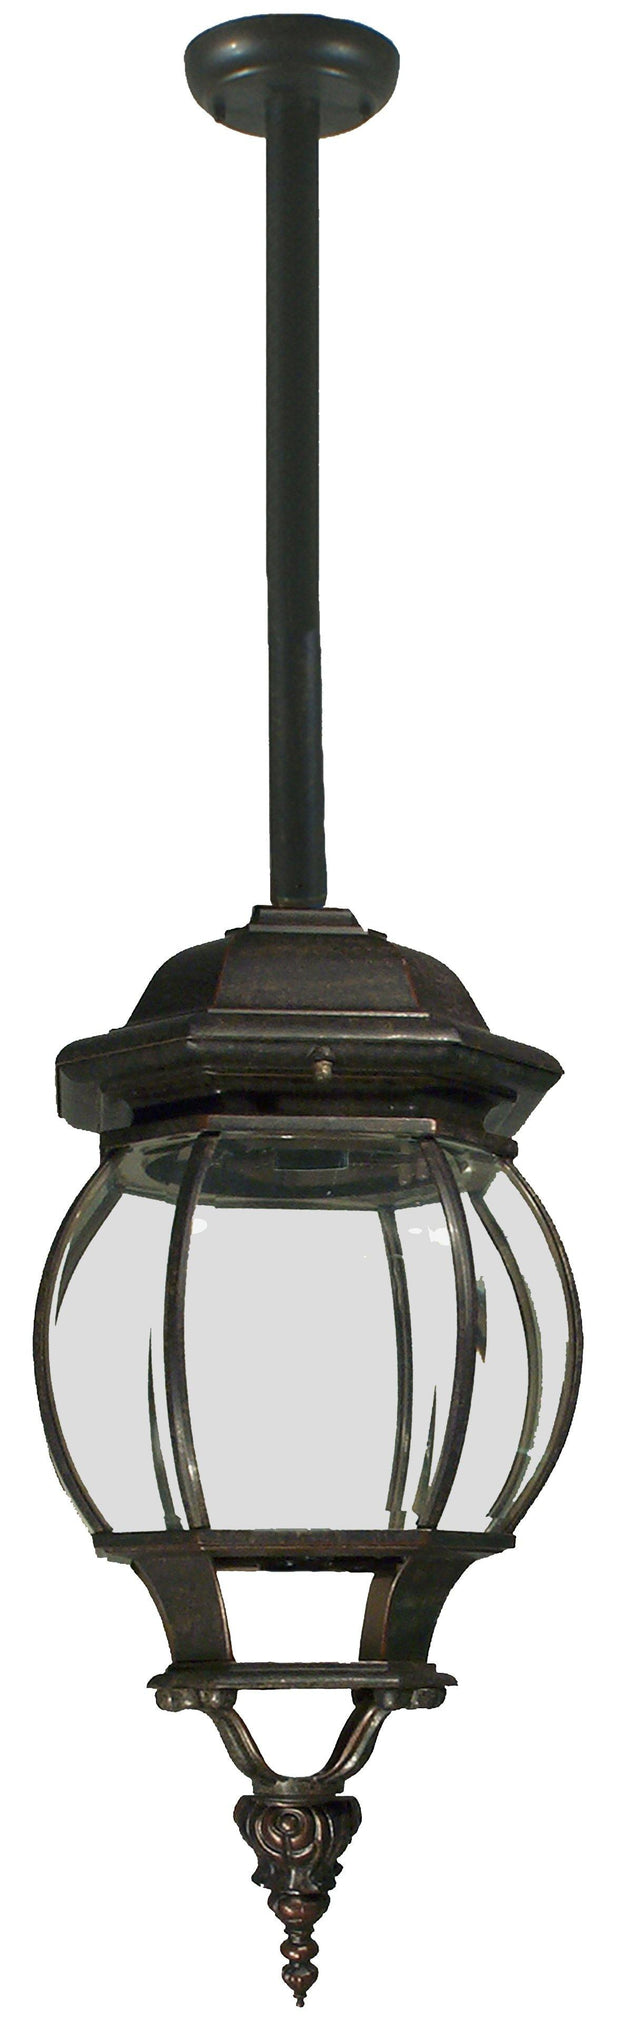 Flinders Exterior Rod Pendant - Antique Bronze